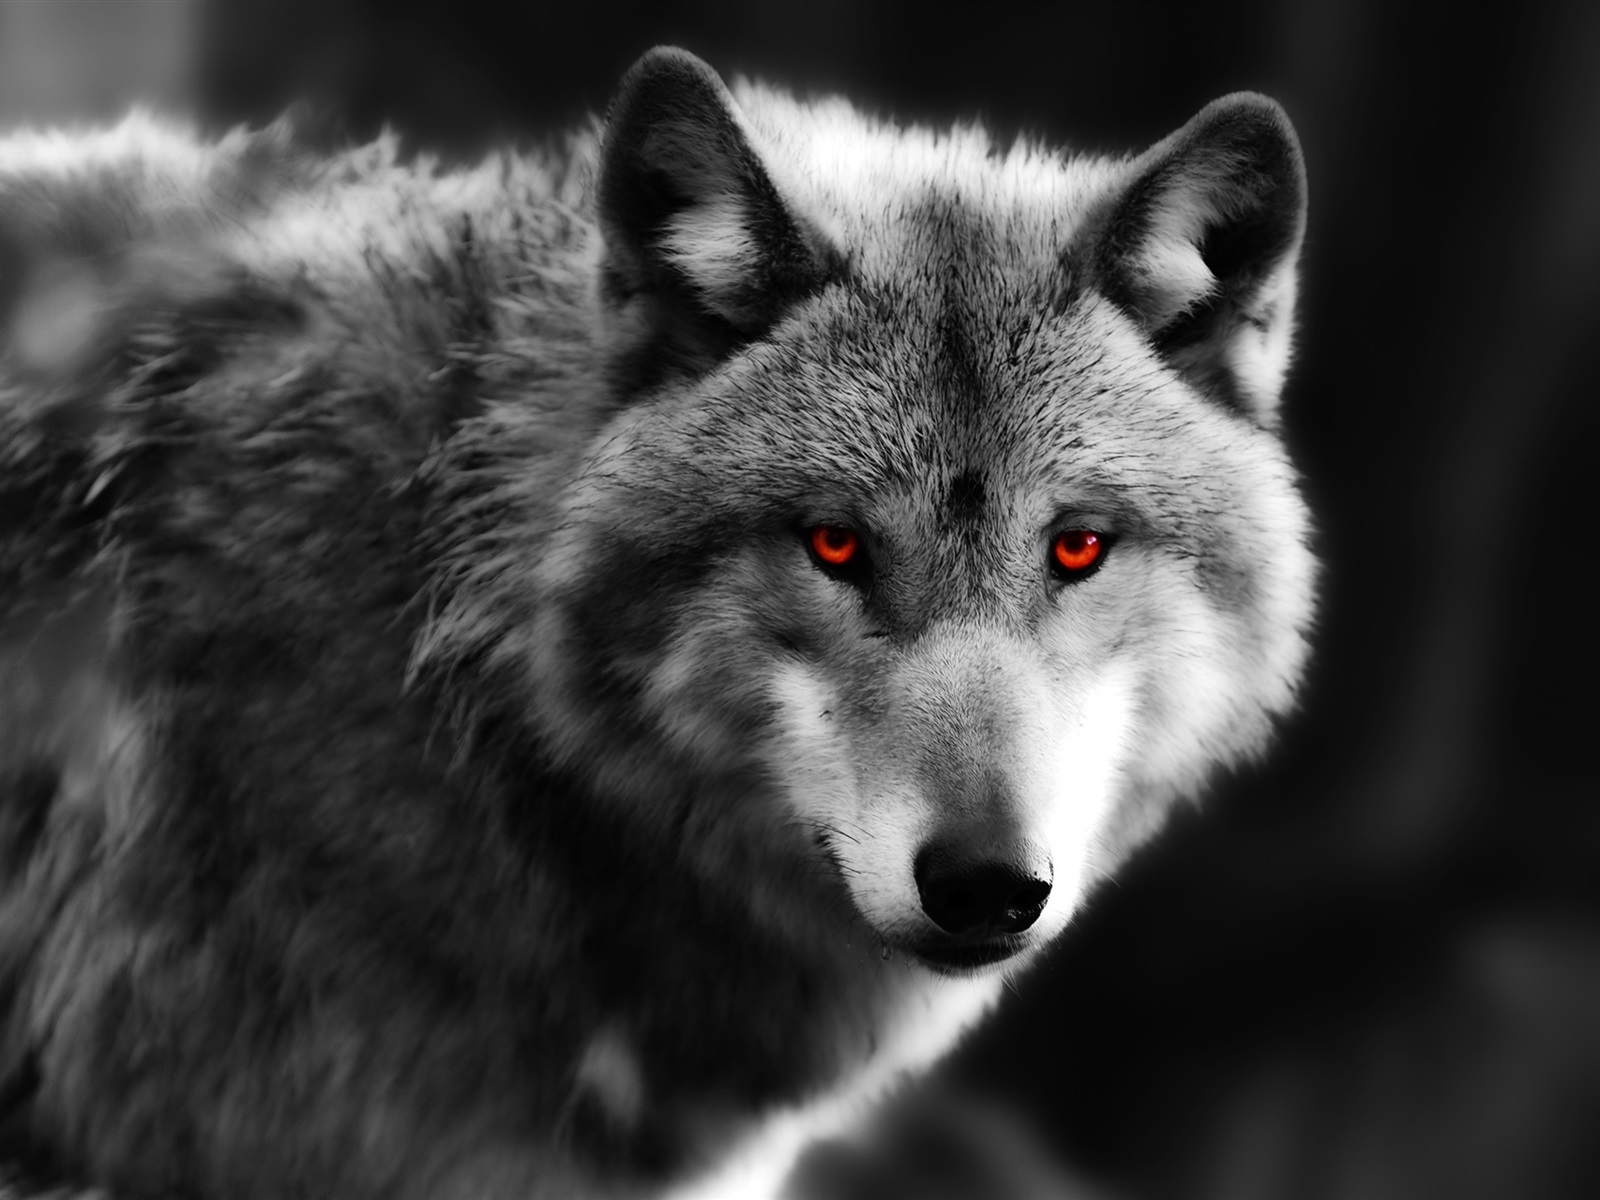 Wolf Wallpaper Iphone Fonds D 233 Cran Loup Close Up Yeux Rouges Pr 233 Dateur